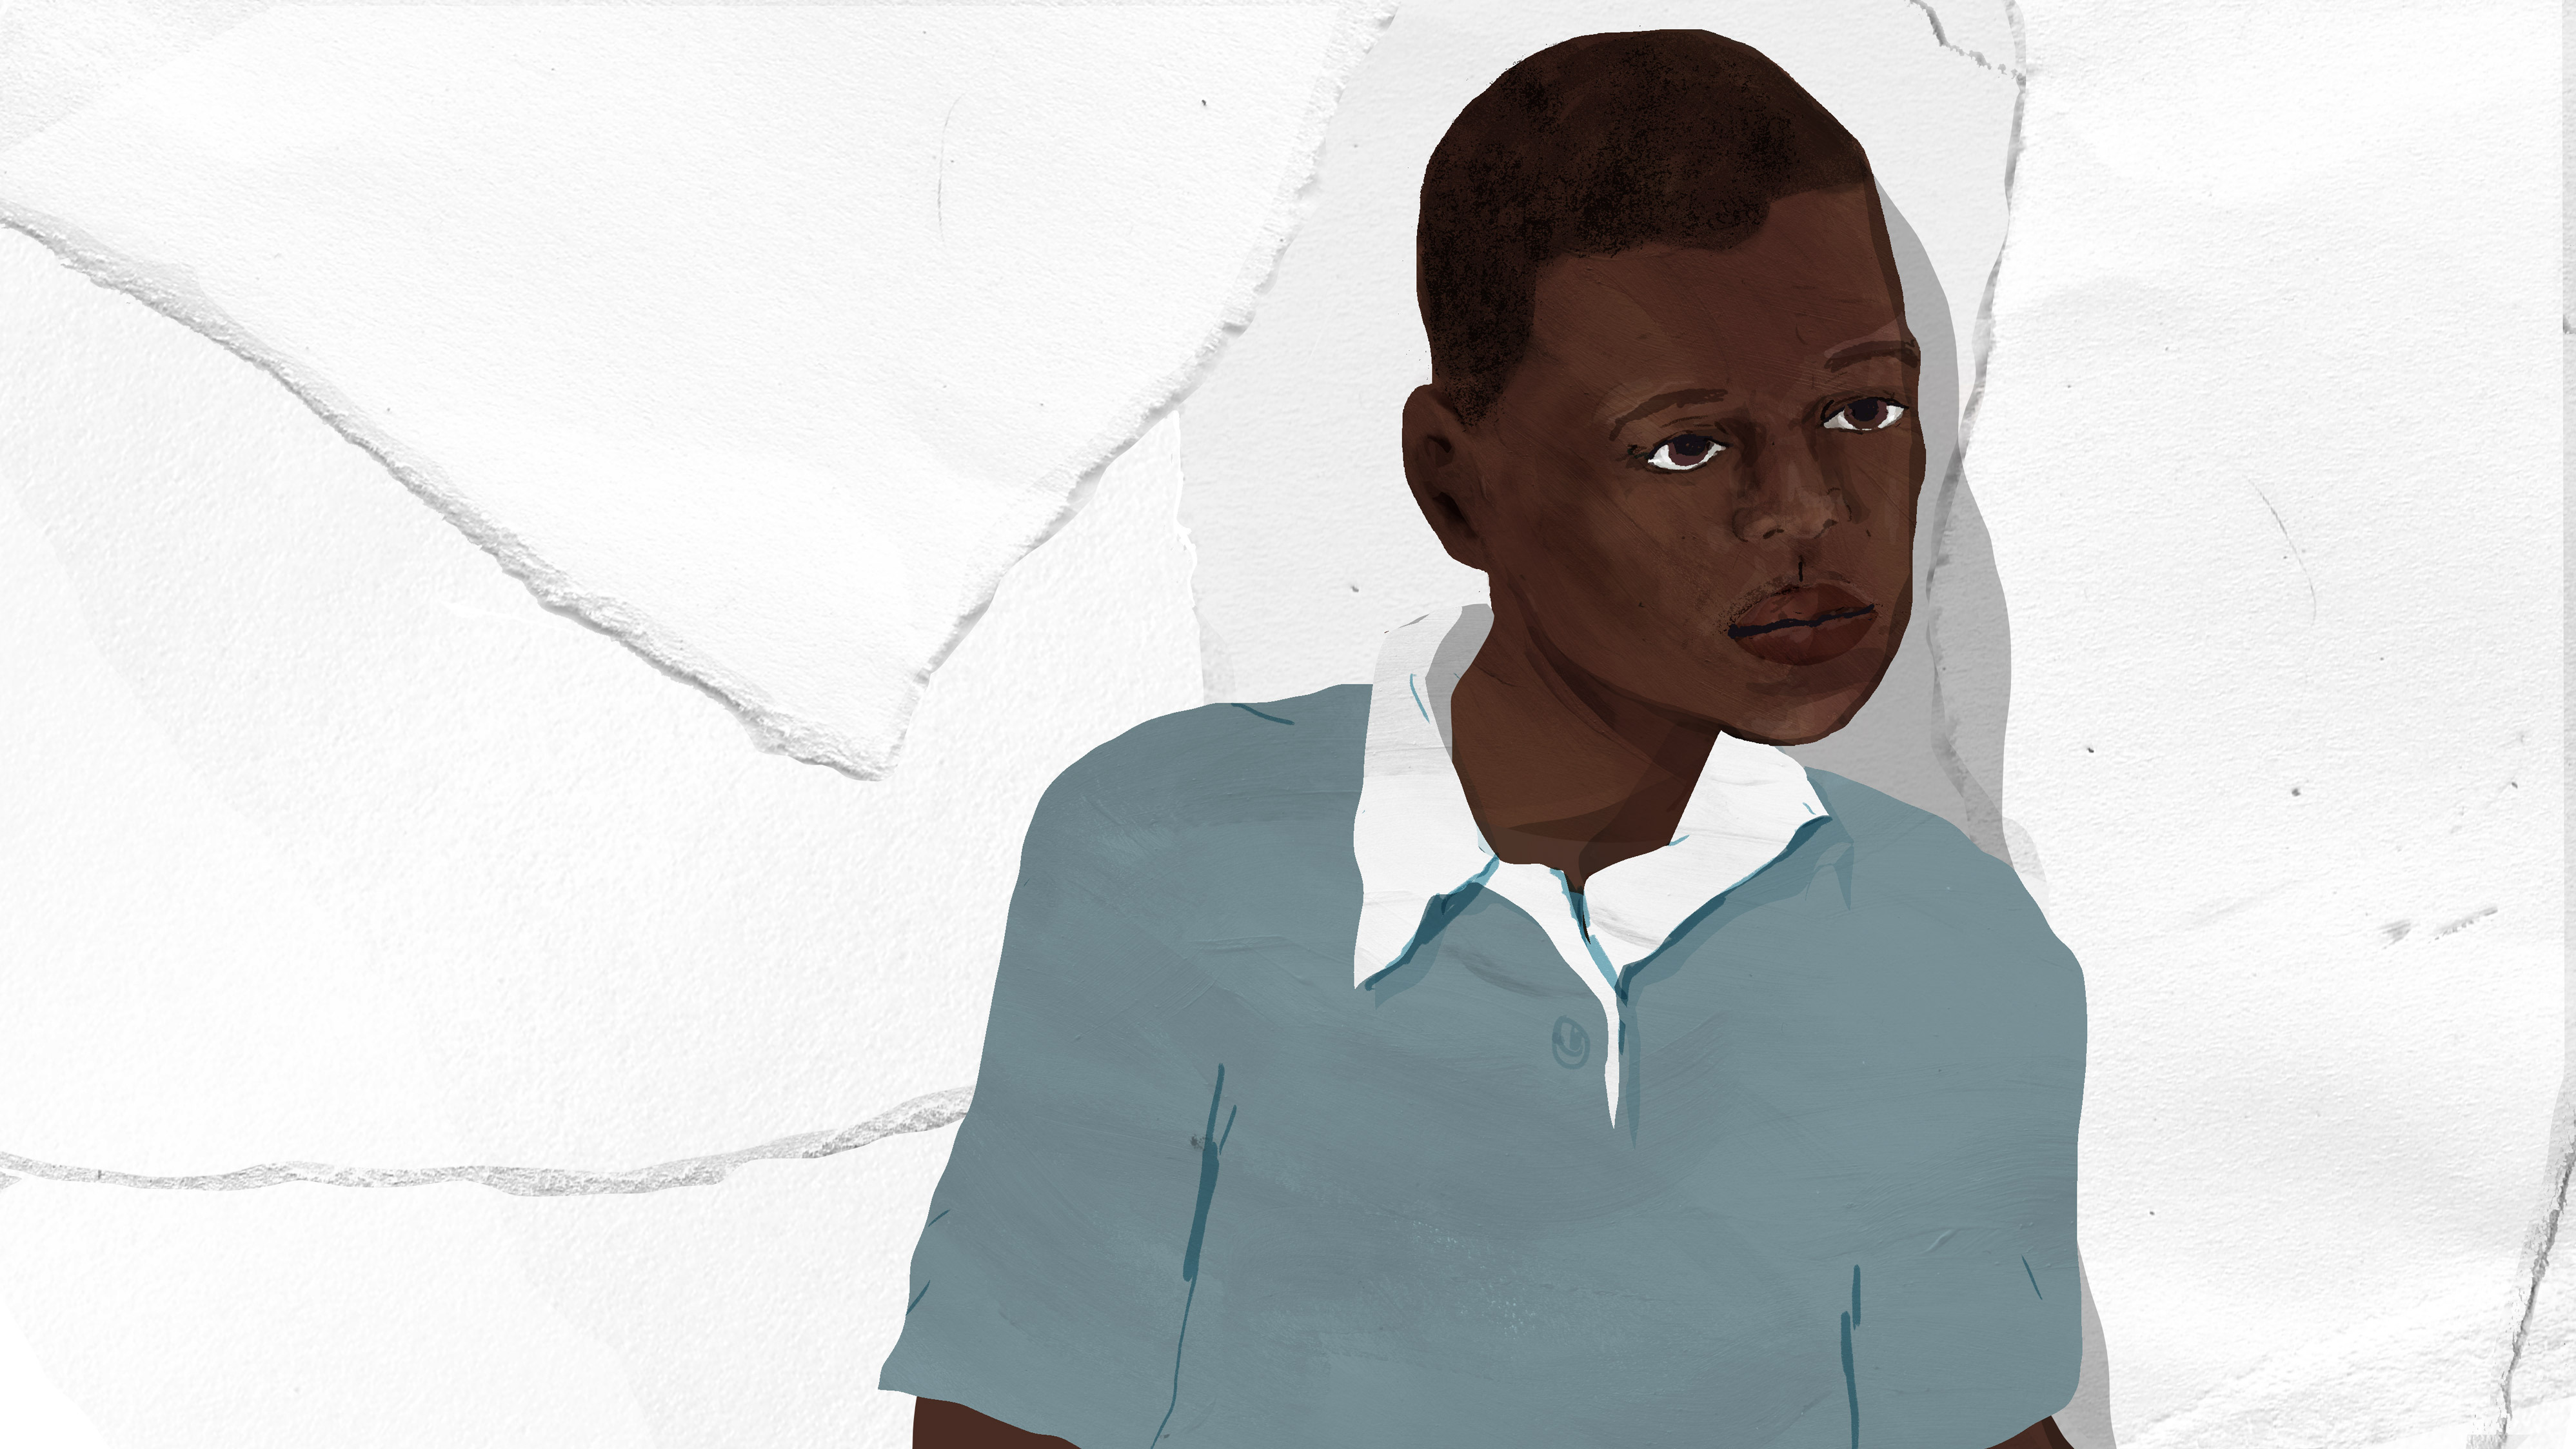 He's 14. He Was A Child Soldier. He's Suicidal. How Can He Be Saved?